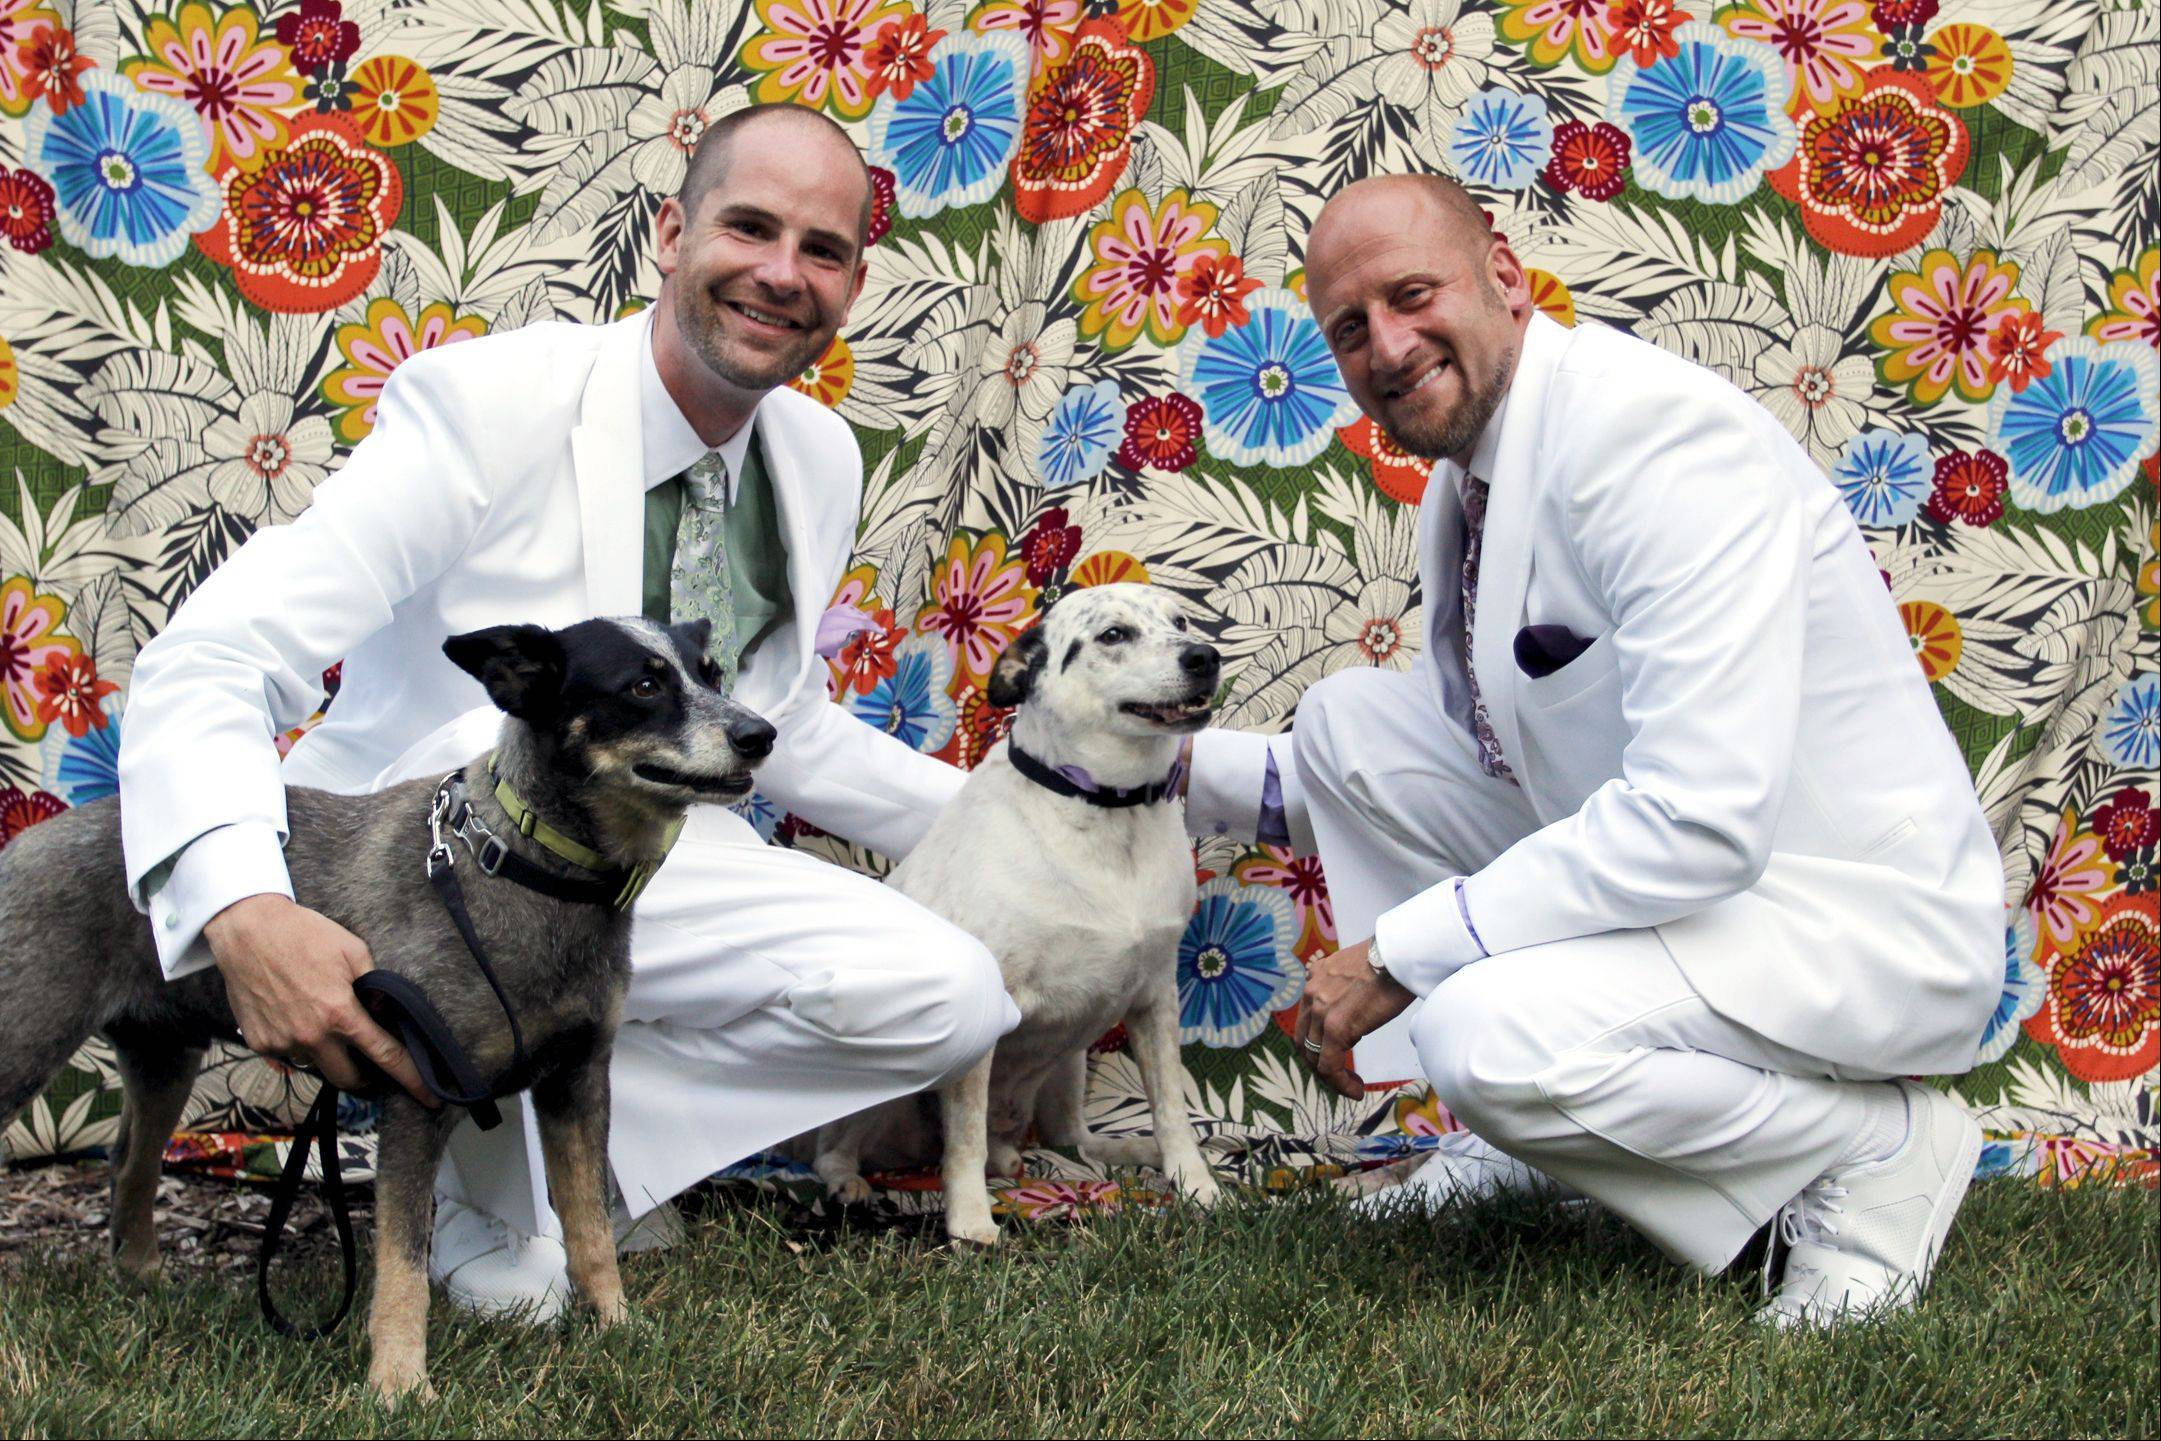 Rich Lane, left, and Jaime Laurita with their best men, Chip (white dog) and Bean (gray dog).